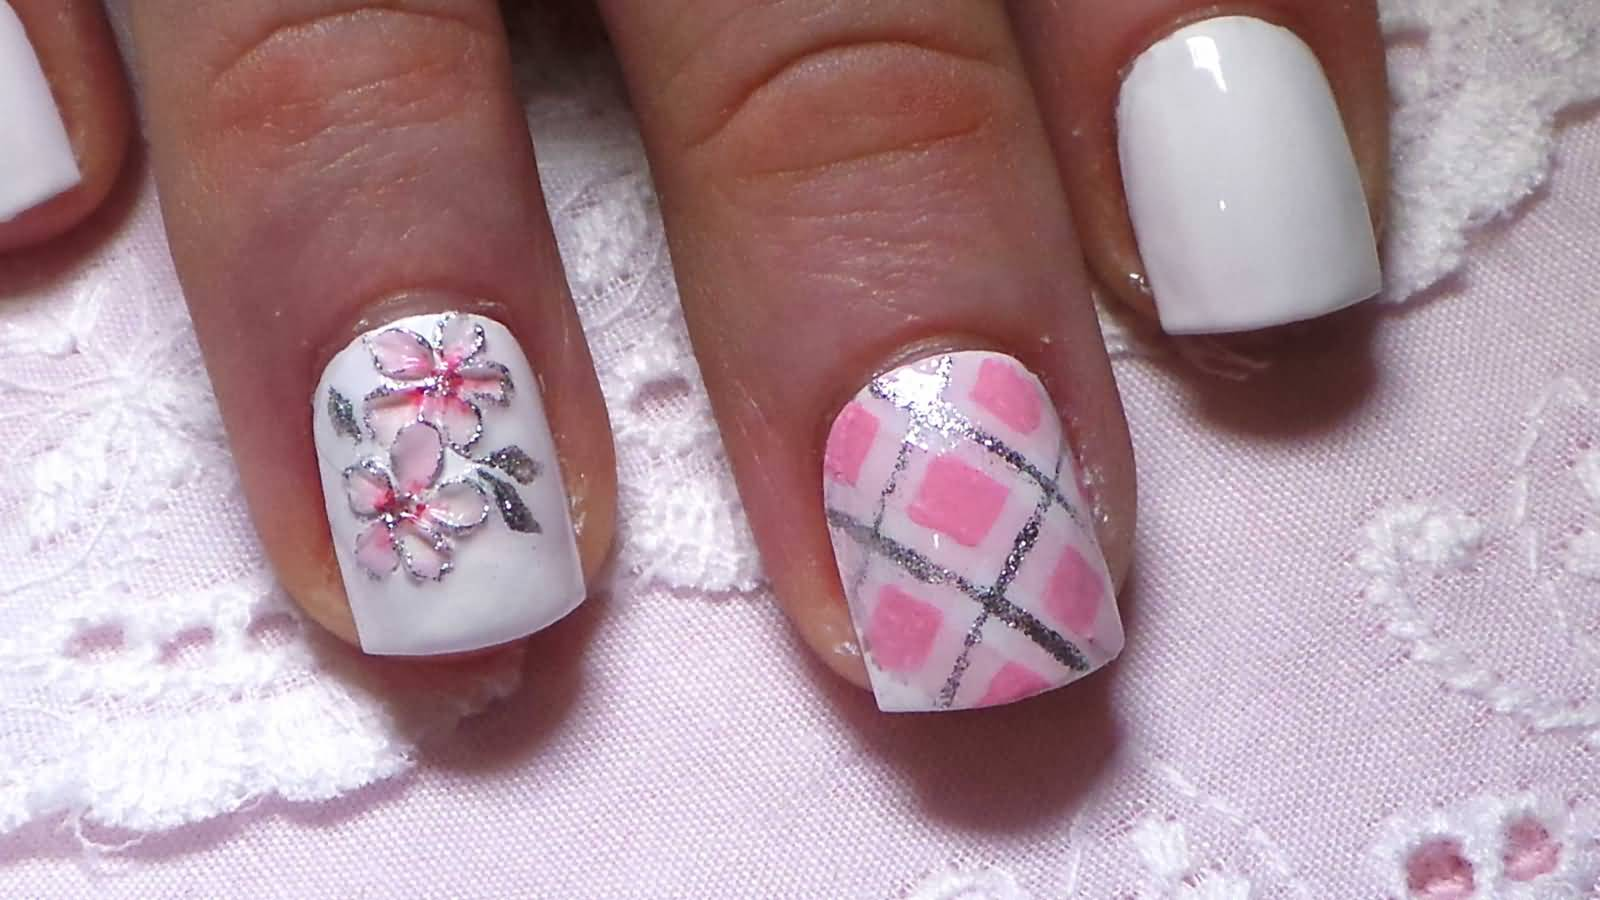 Silver Glitter Plaid Nail Art With Cherry Blossom Flowers With Video Tutorial